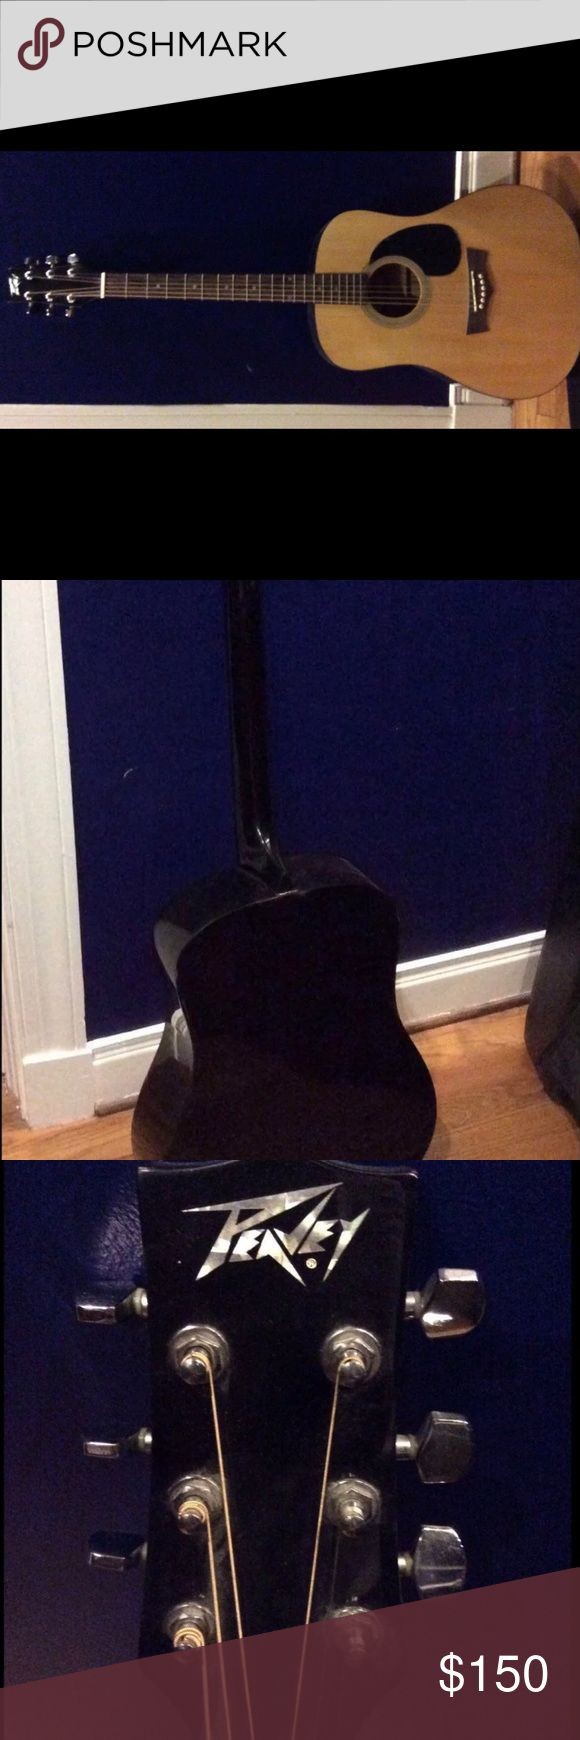 Peavey acoustic guitar 6 string acoustic guitar Peavey peavey Other